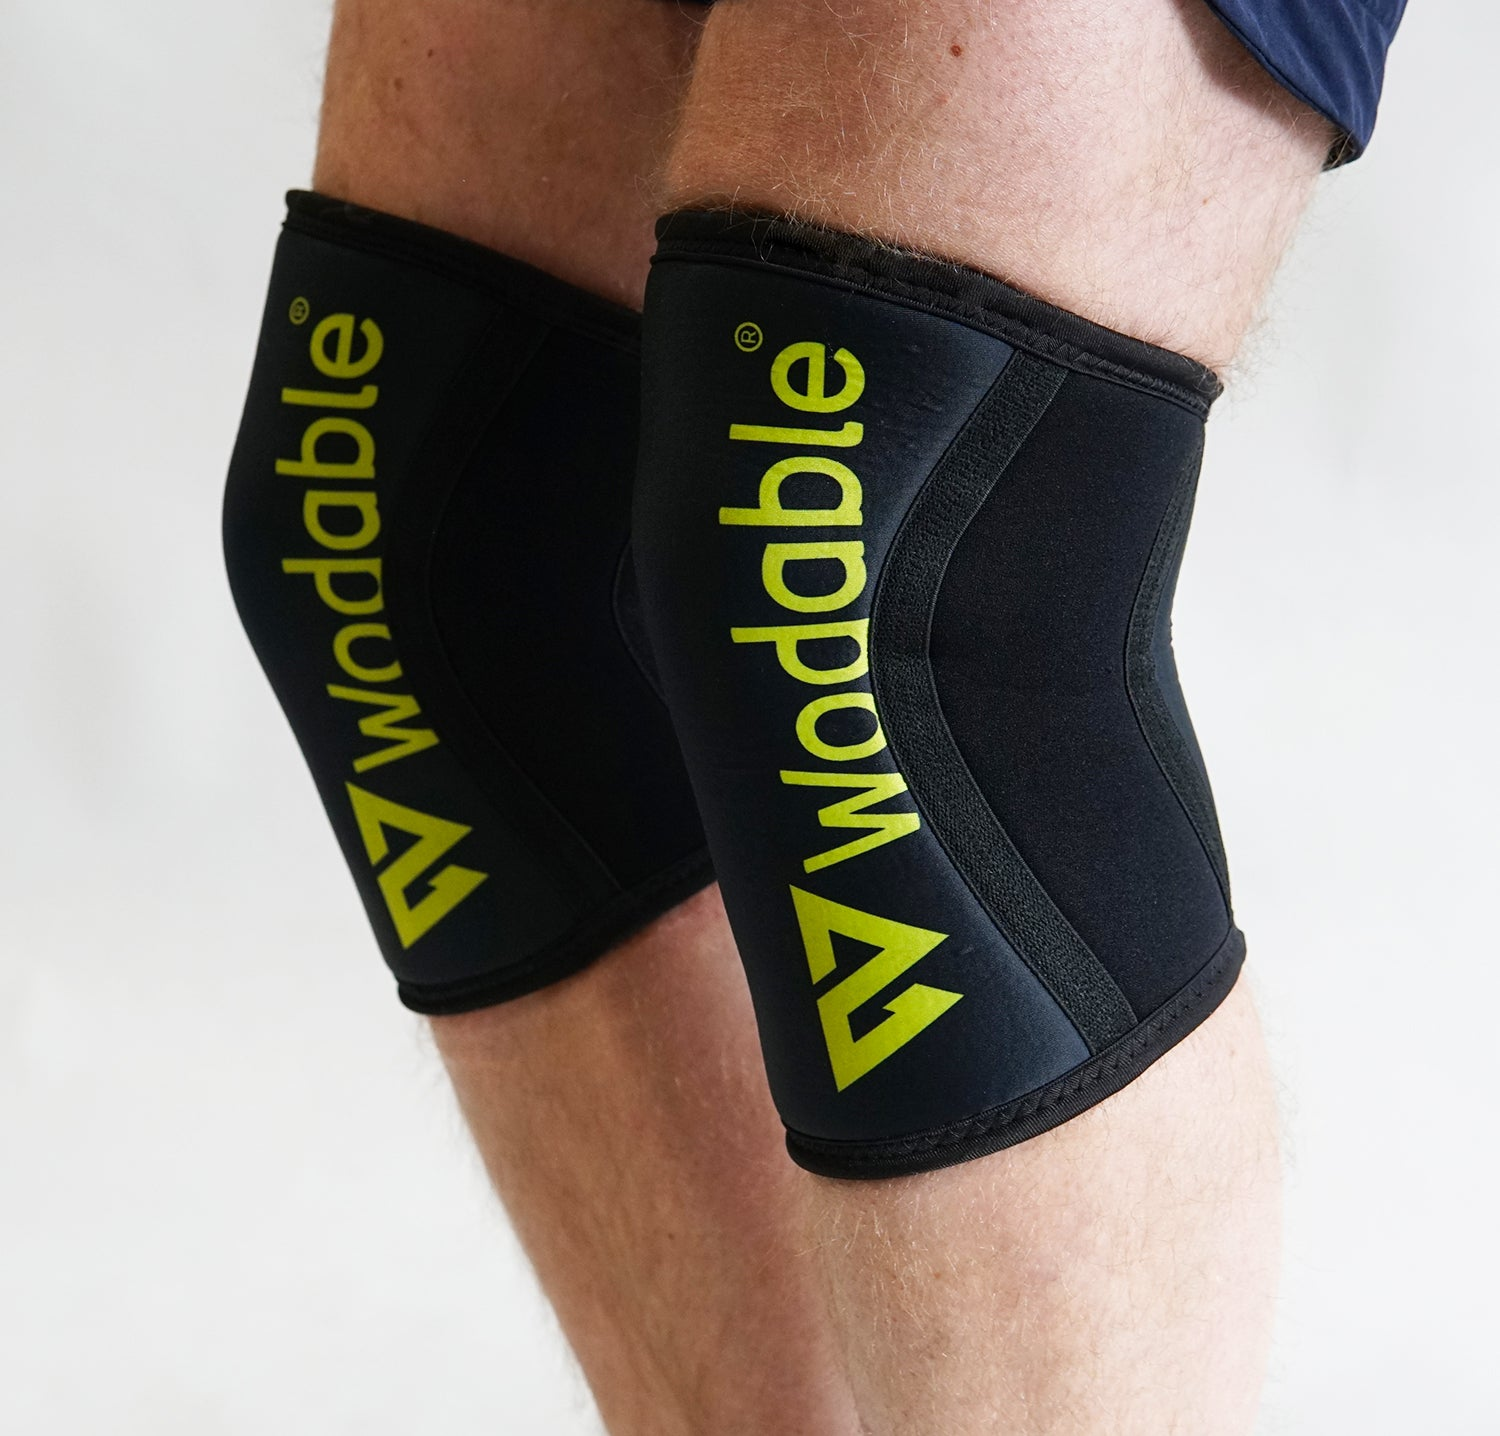 Generation Knee Sleeves - 5mm